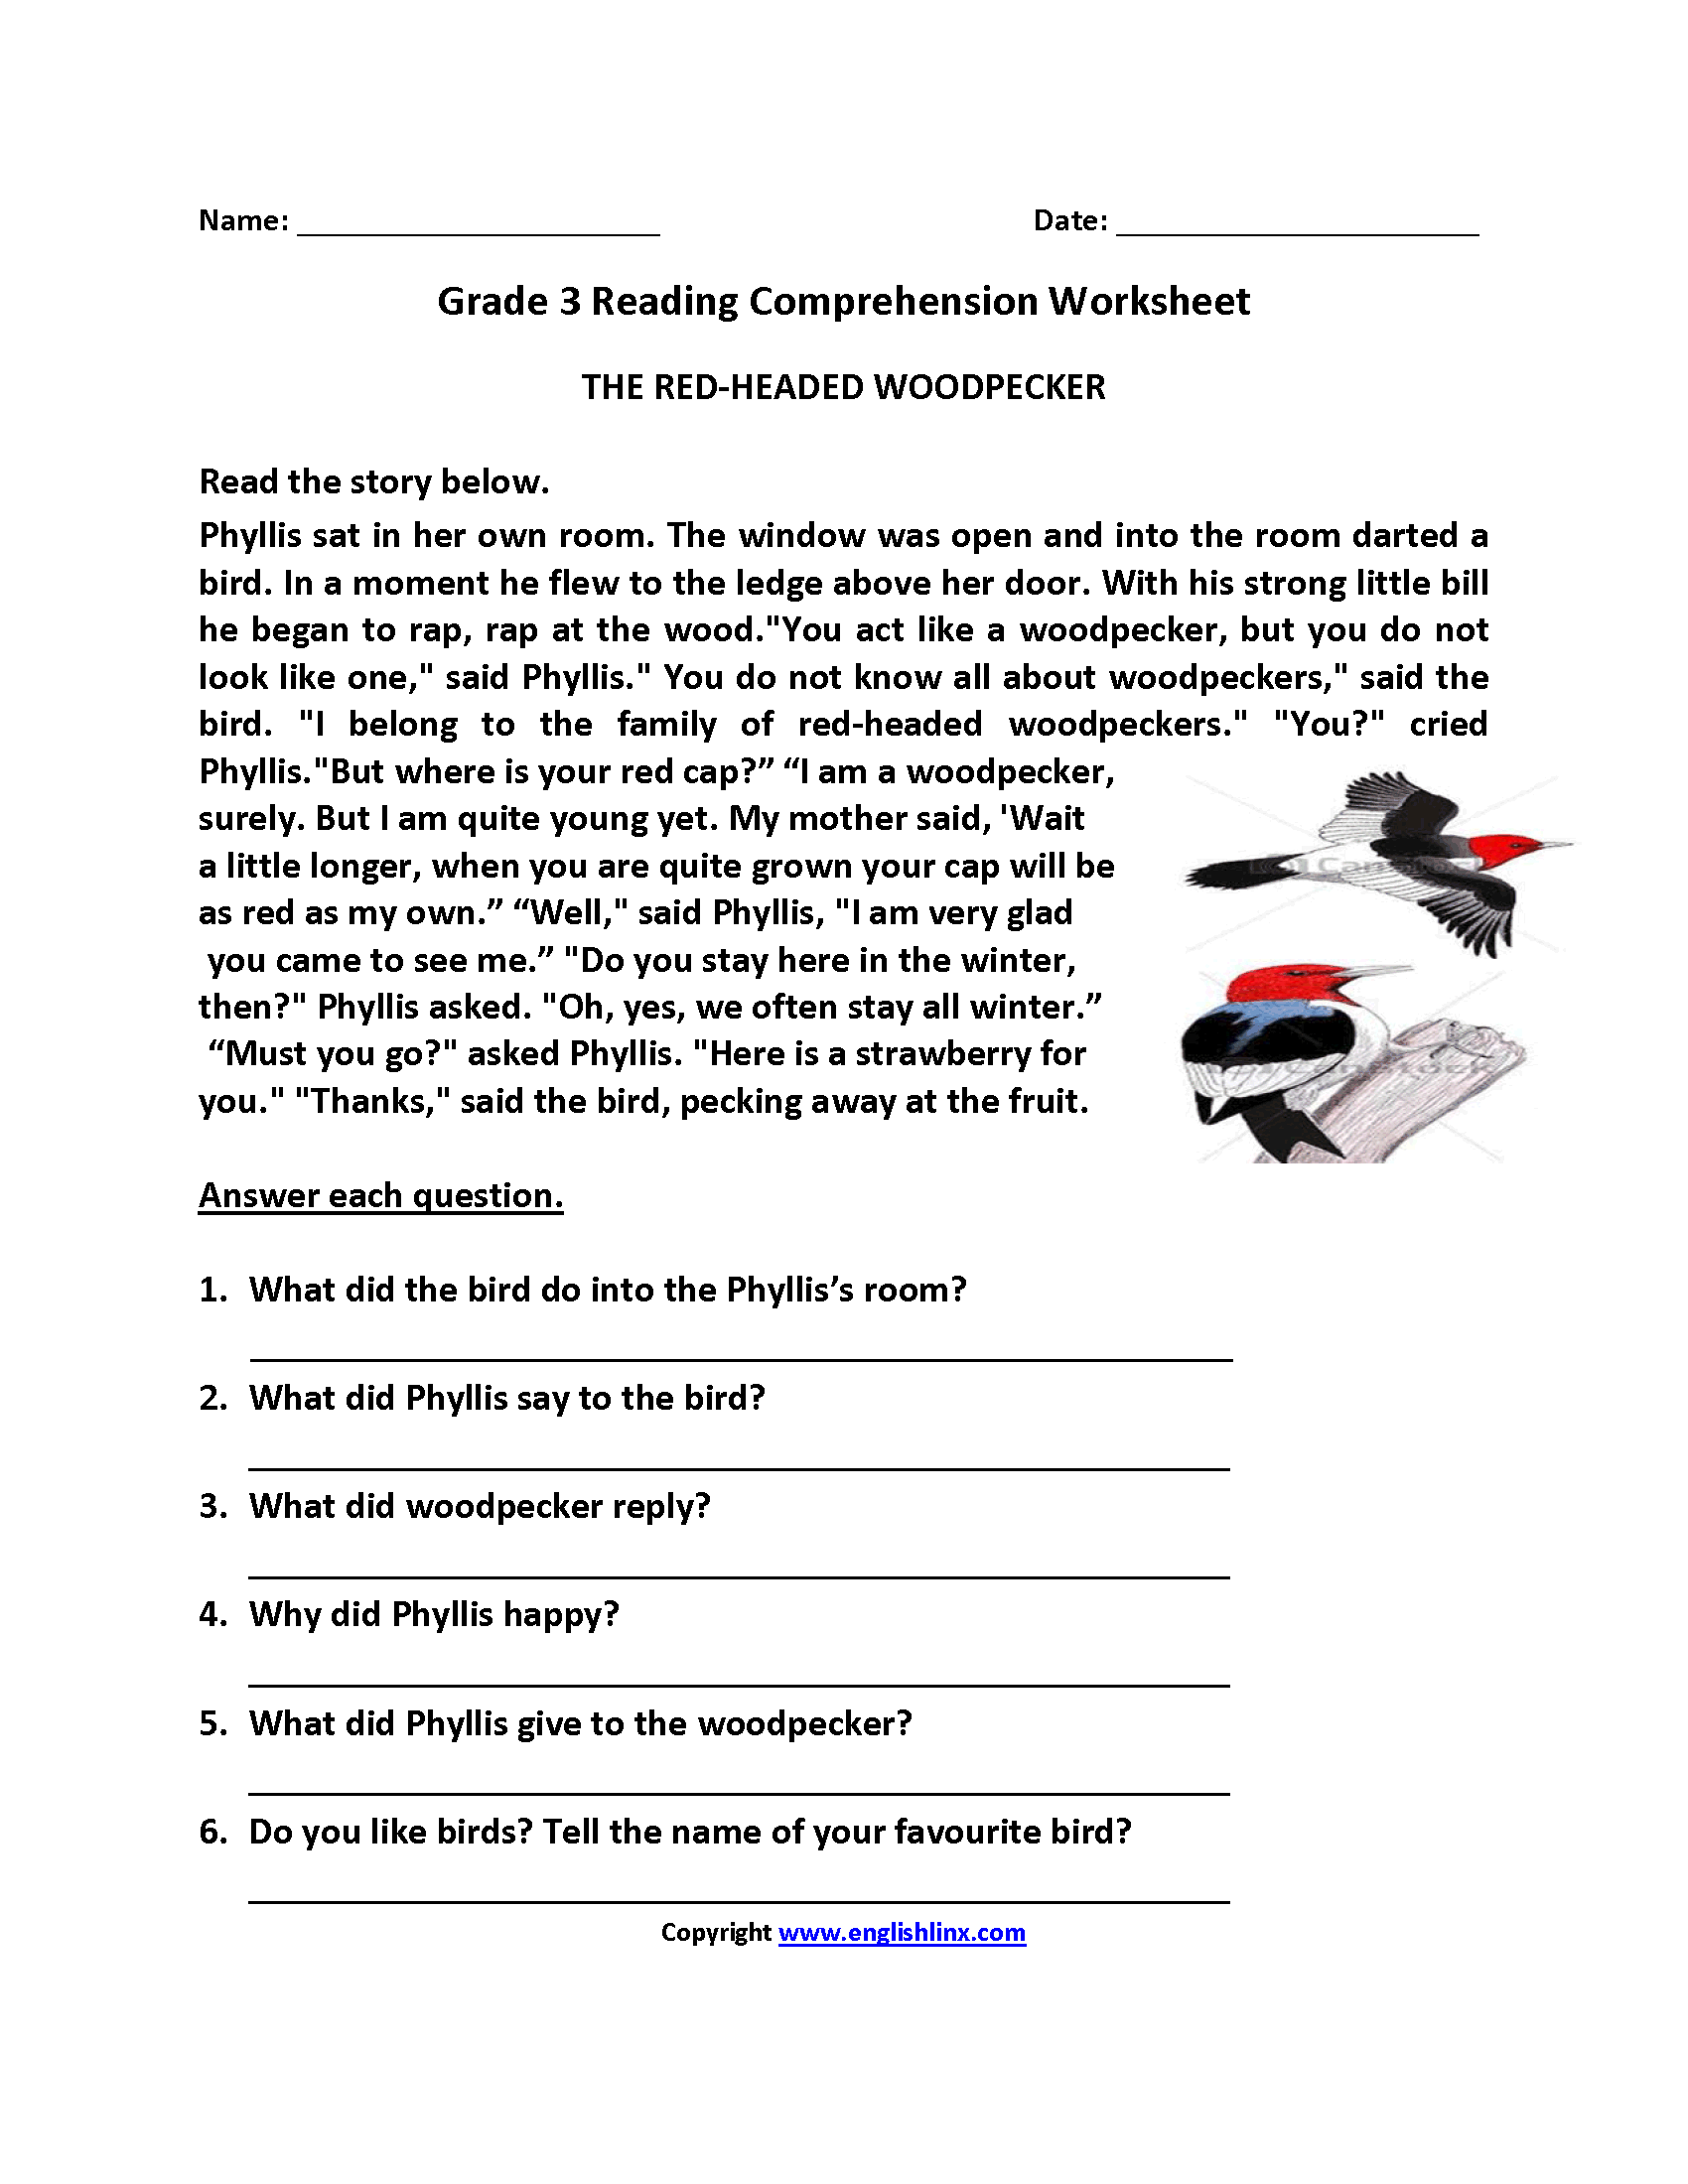 The Redheaded Woodpecker Third Grade Reading Worksheets In